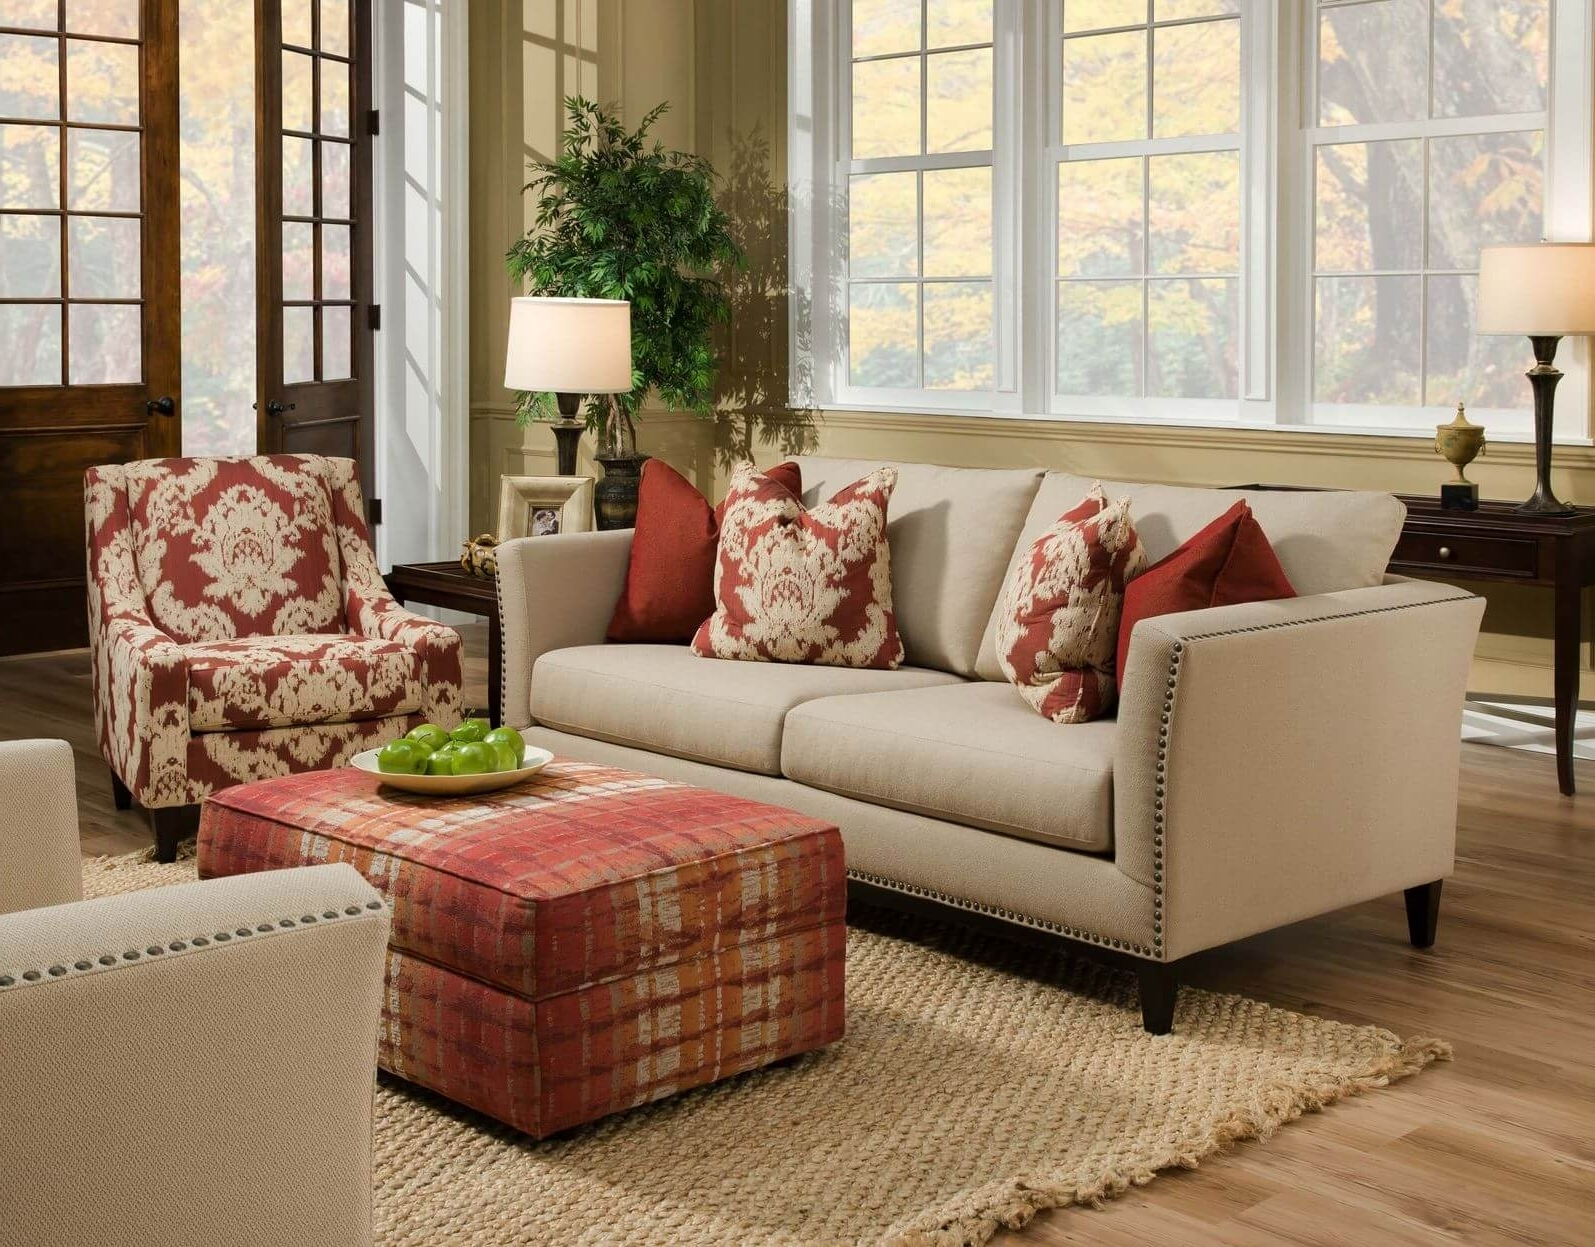 Popular Beige Sofa Decor Ideas — Radionigerialagos Pertaining To Colorful Sofas And Chairs (View 13 of 20)